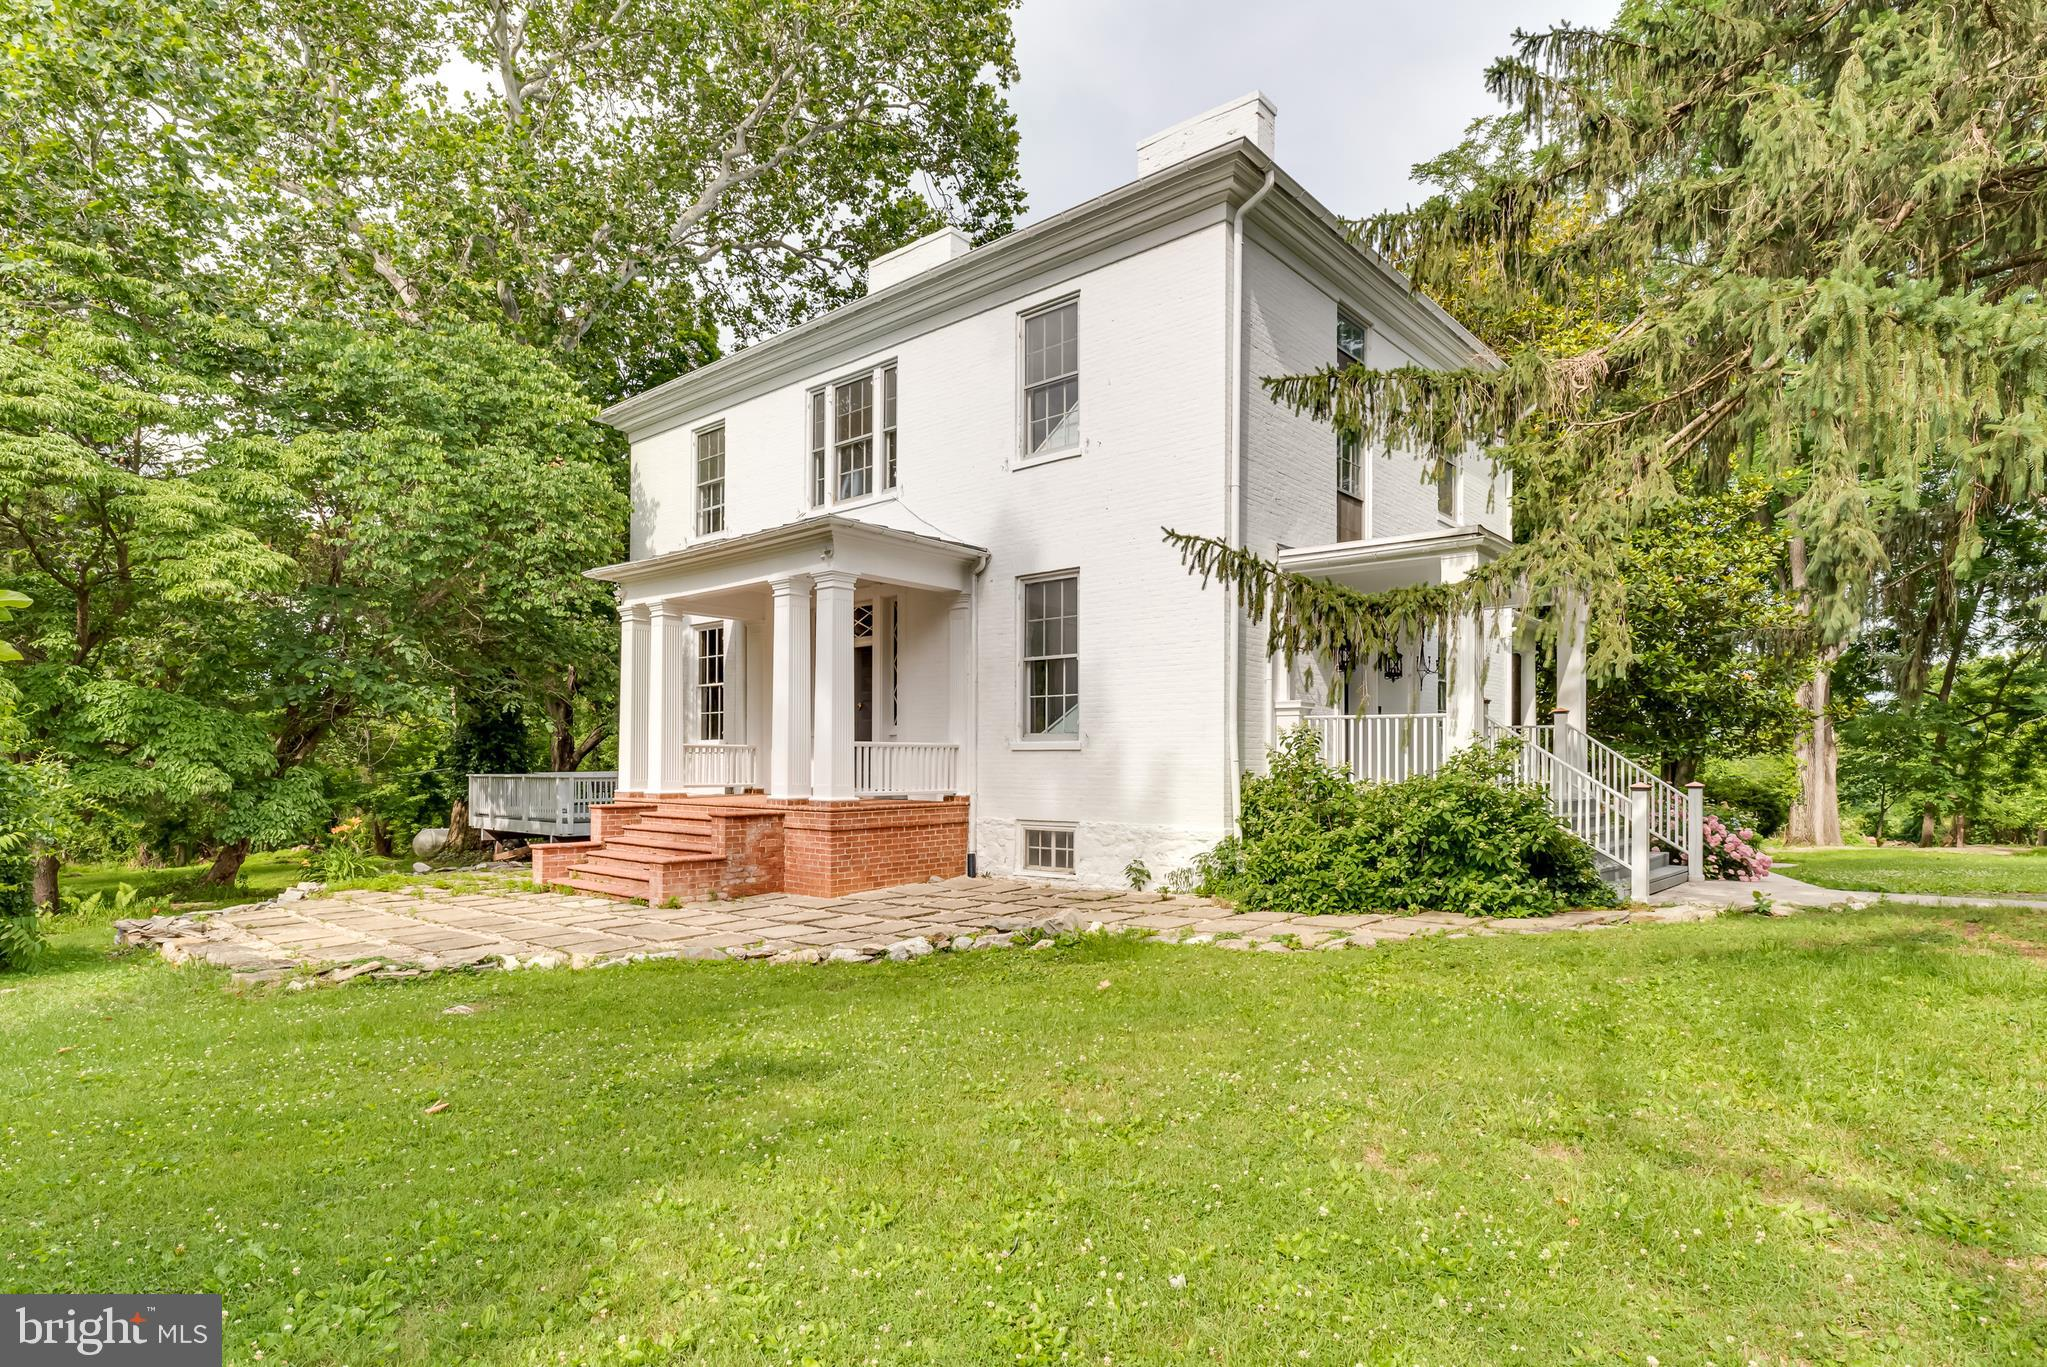 1644 OLD CAVE ROAD, CHARLES TOWN, WV 25414